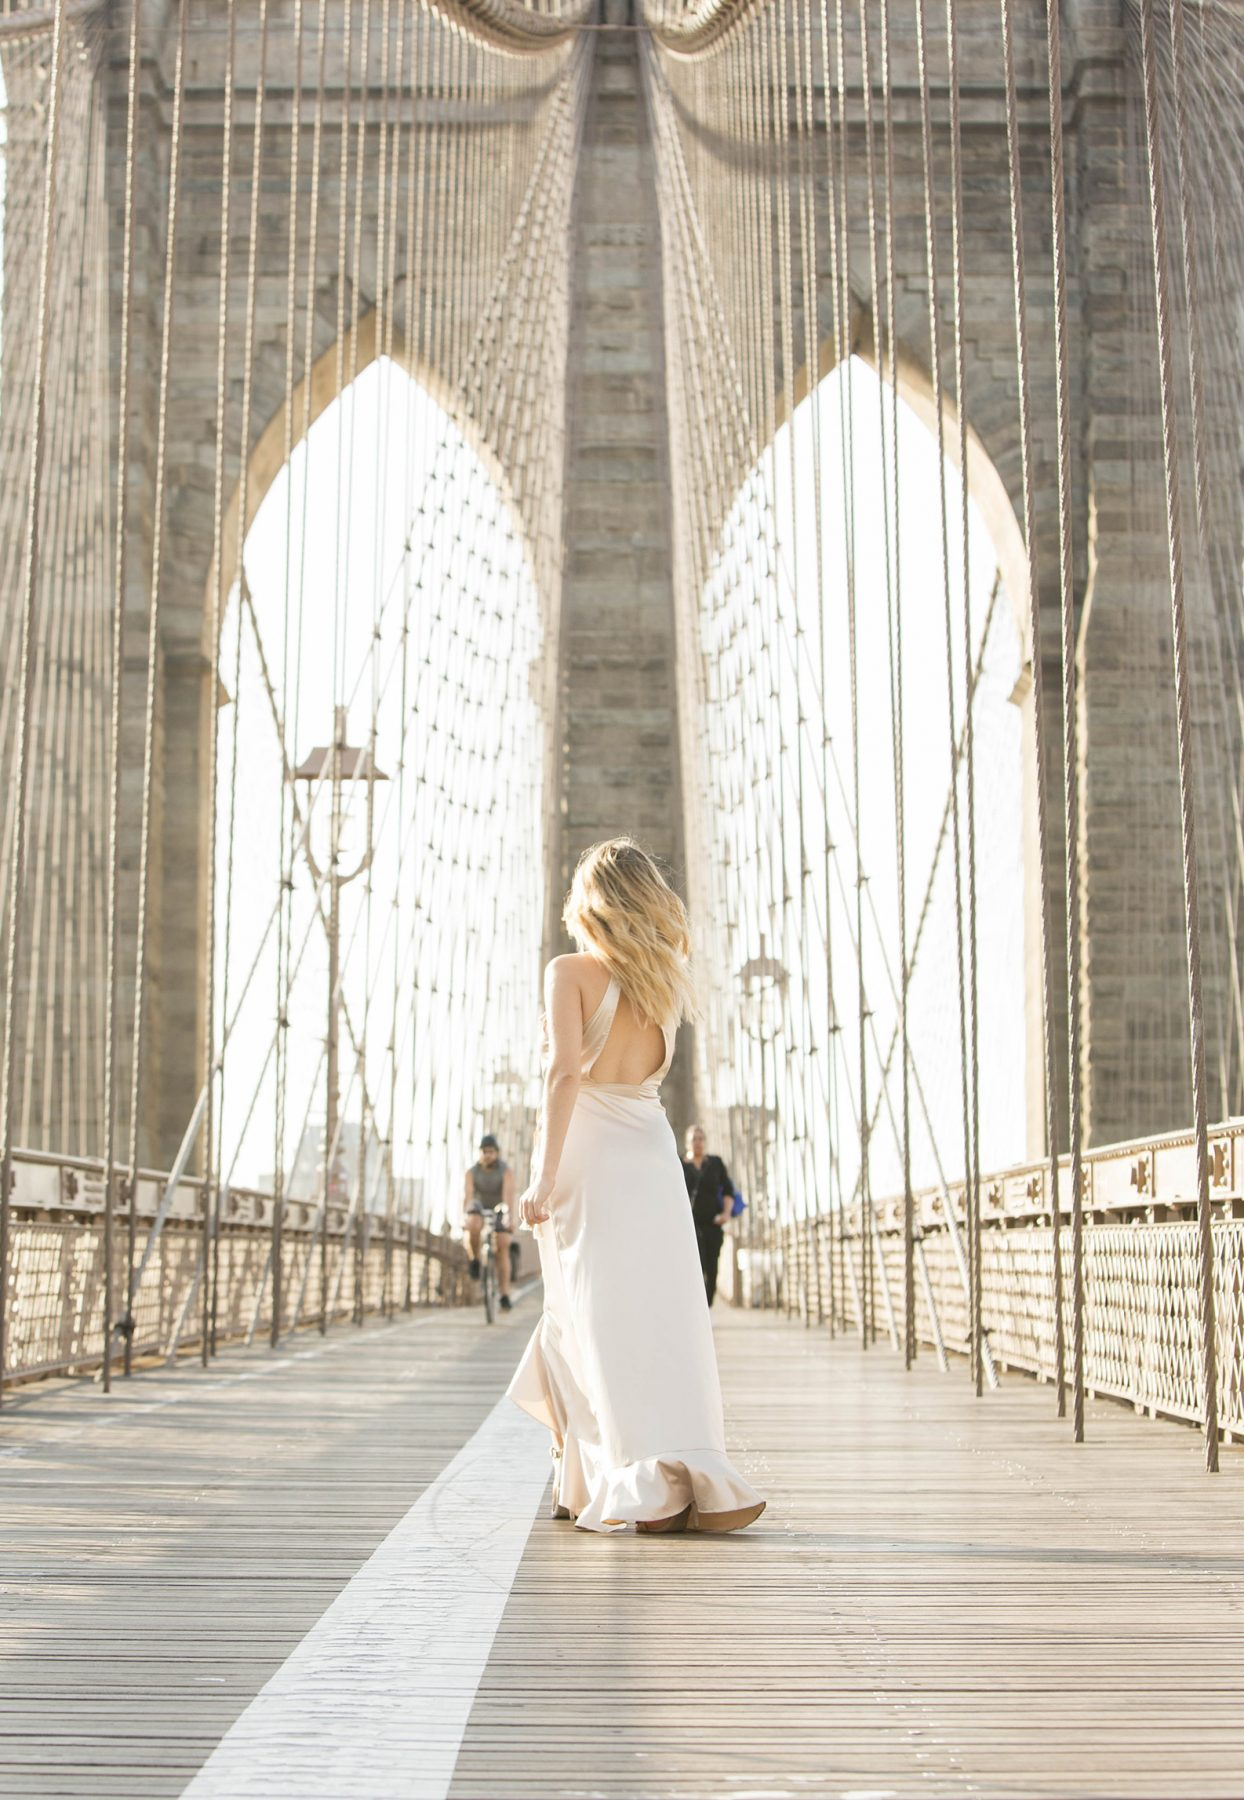 Brooklyn Bridge fashion blogger photo shoot Shenska